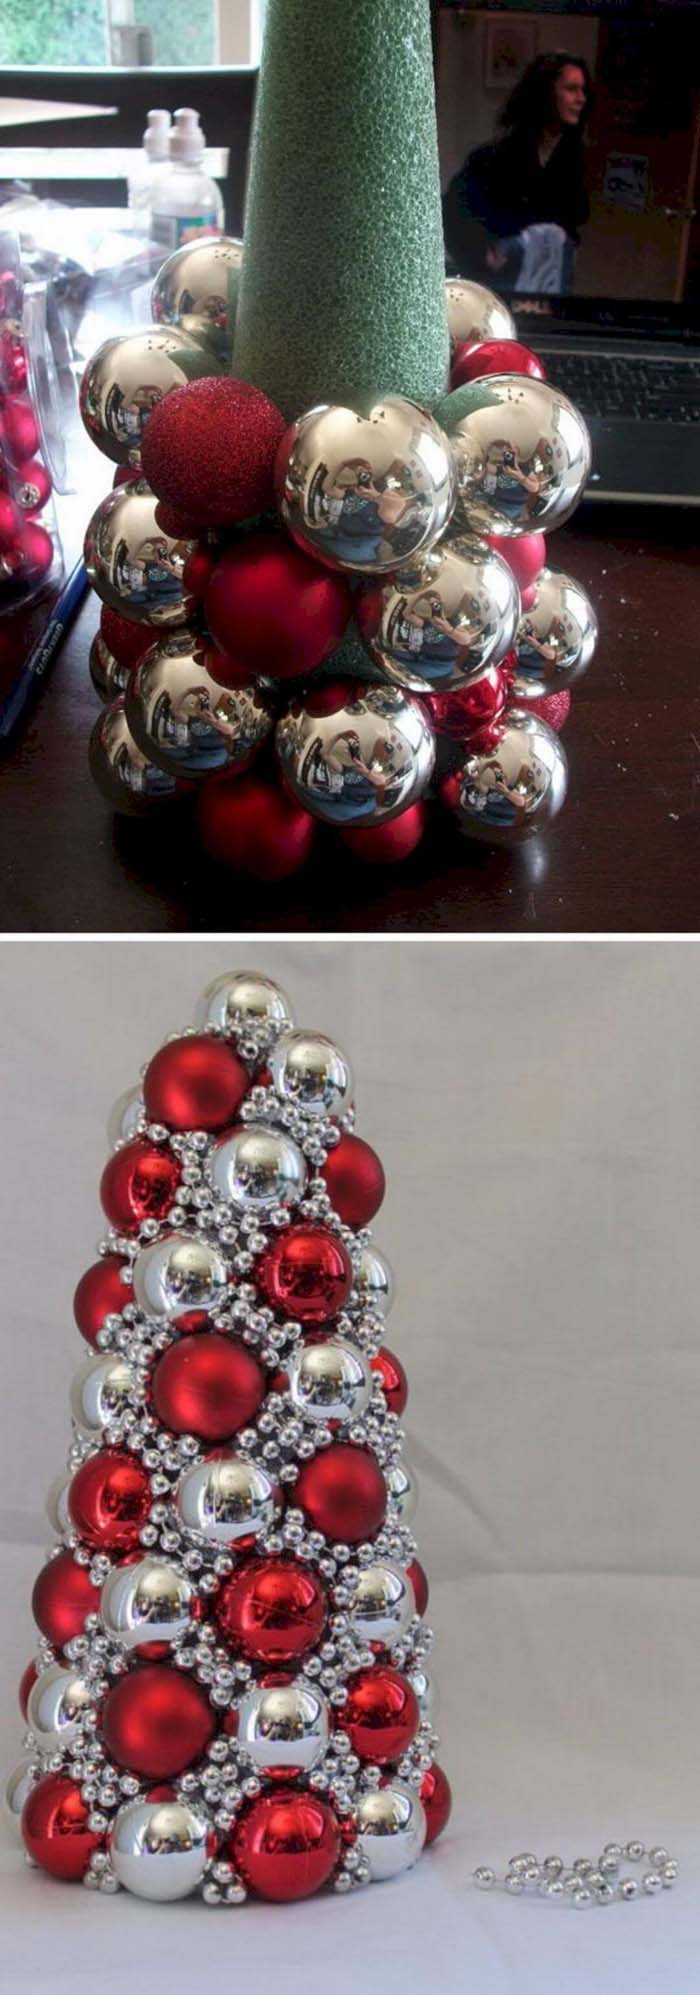 Red and Silver DIY Ornament Tree #Christmas #Christmastree #decorhomeideas